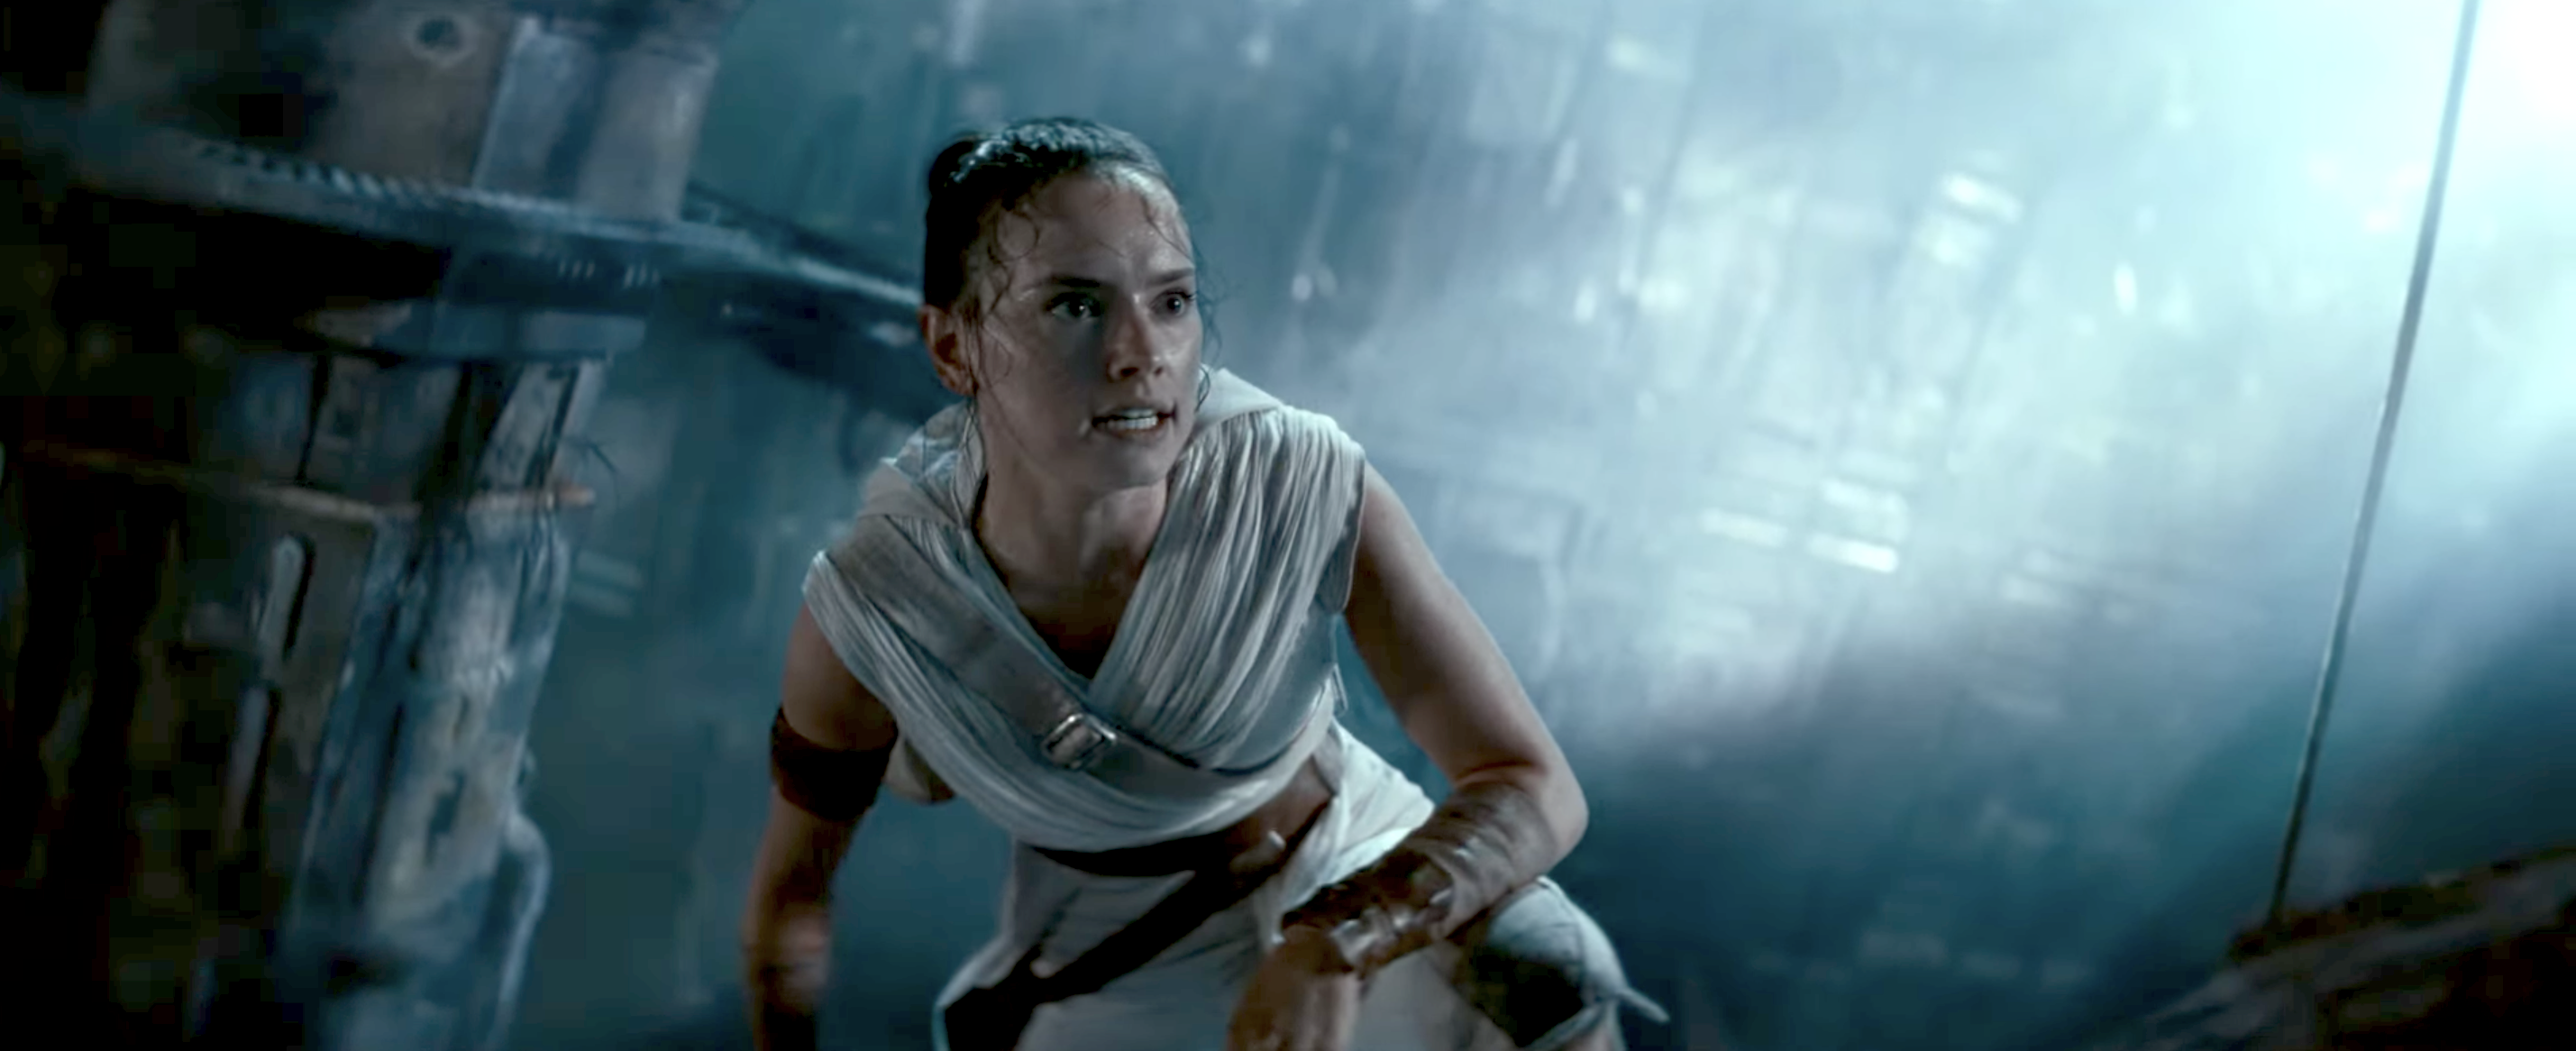 Star Wars: The Rise of Skywalker's Daisy Ridley reveals why it was fun to play dark Rey